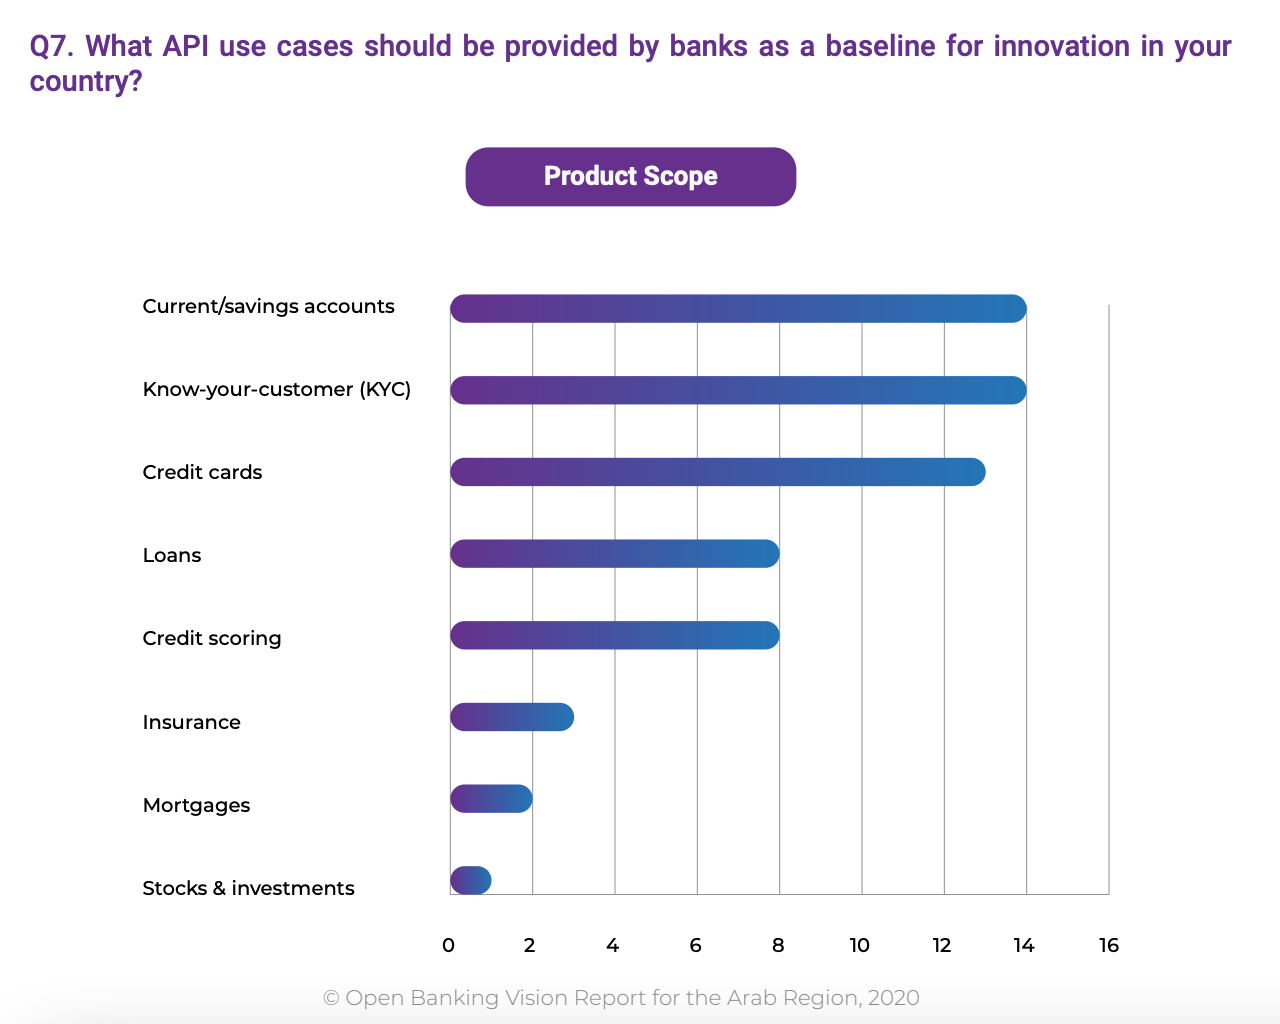 What API use cases should be provided by banks as a baseline for innovation in your country?